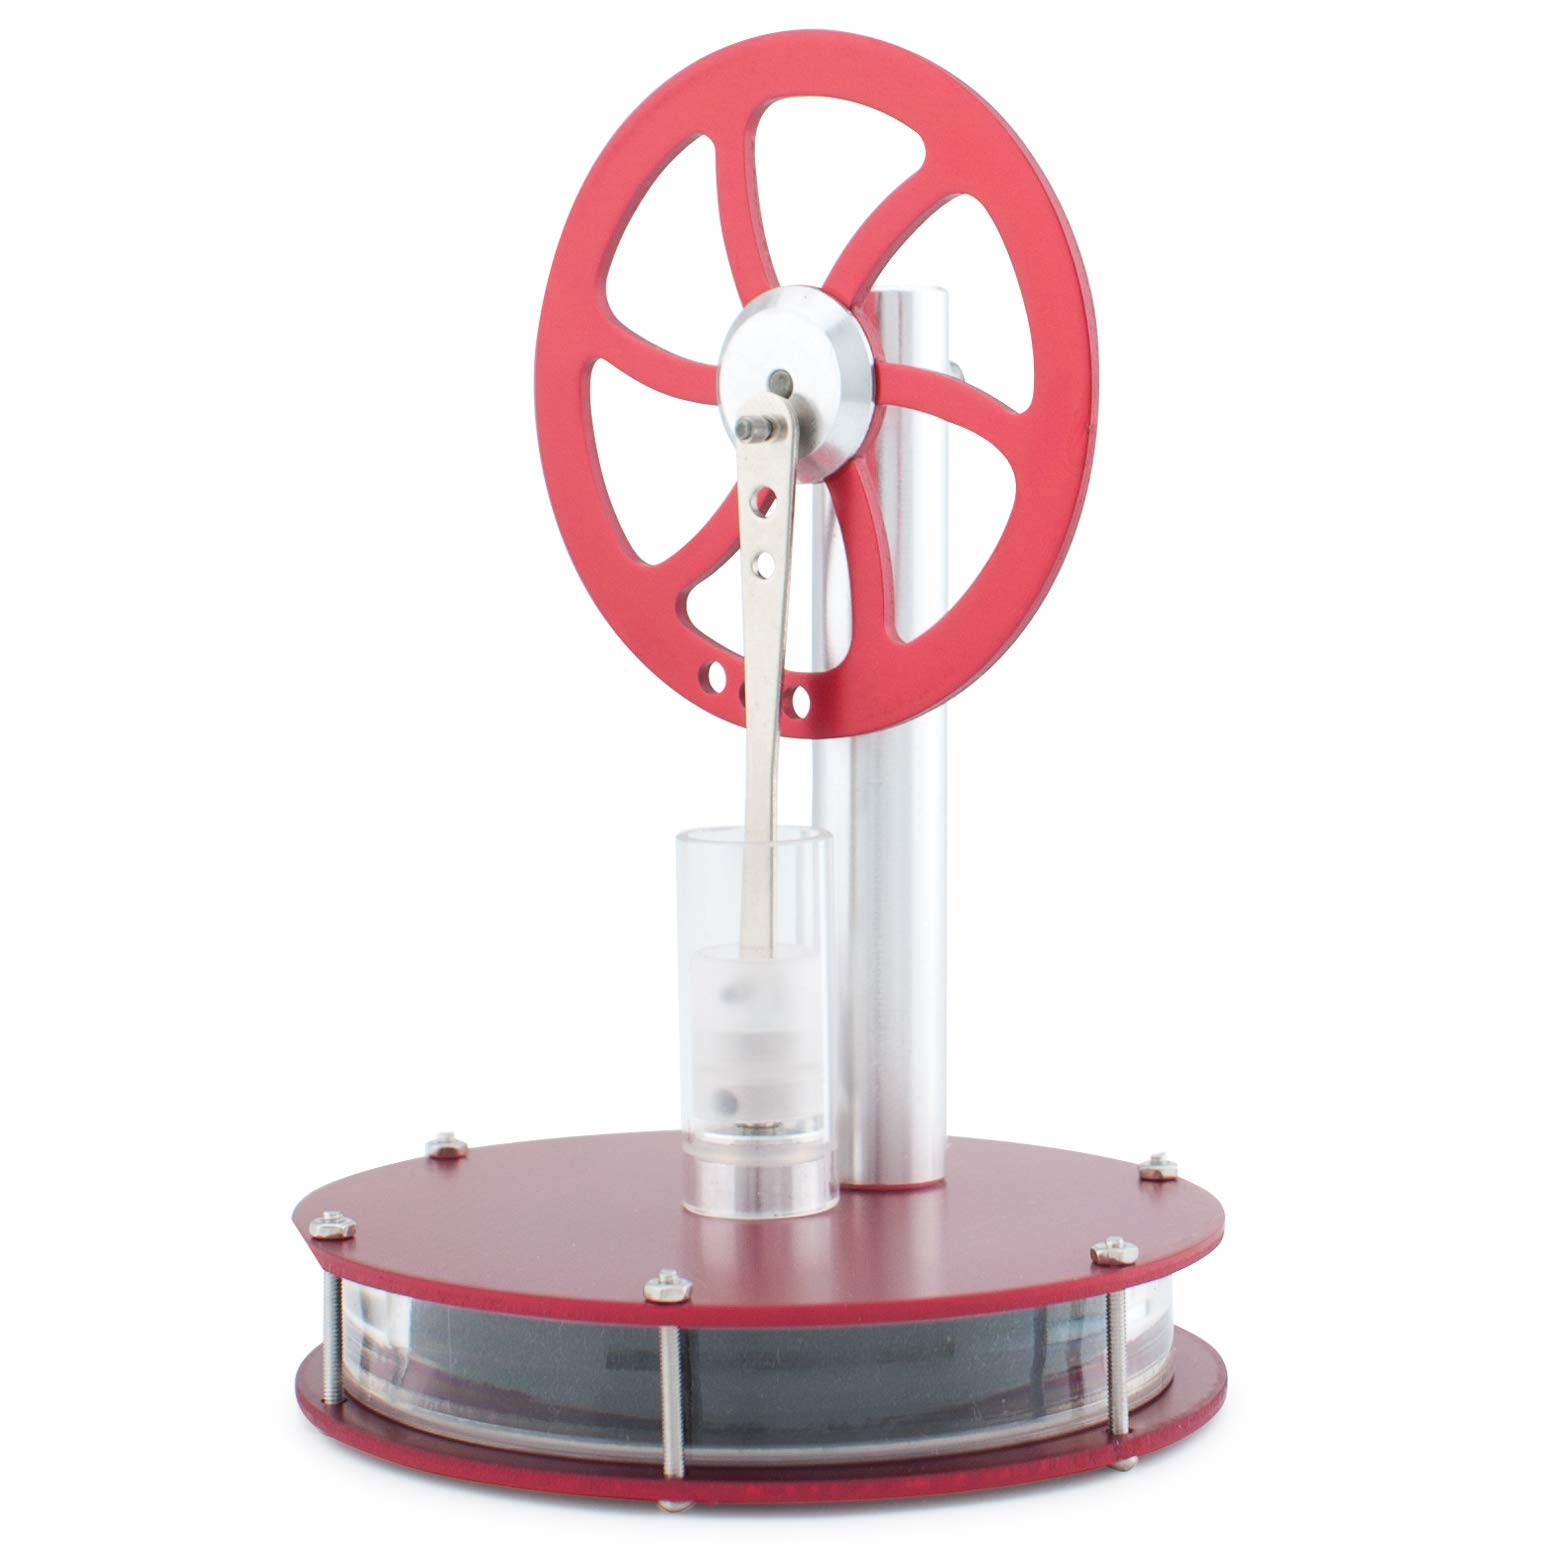 DjuiinoStar High Performance Low Temperature Stirling Engine: Rotate 1 Hour on A Mug of Hot Coffee (Red)